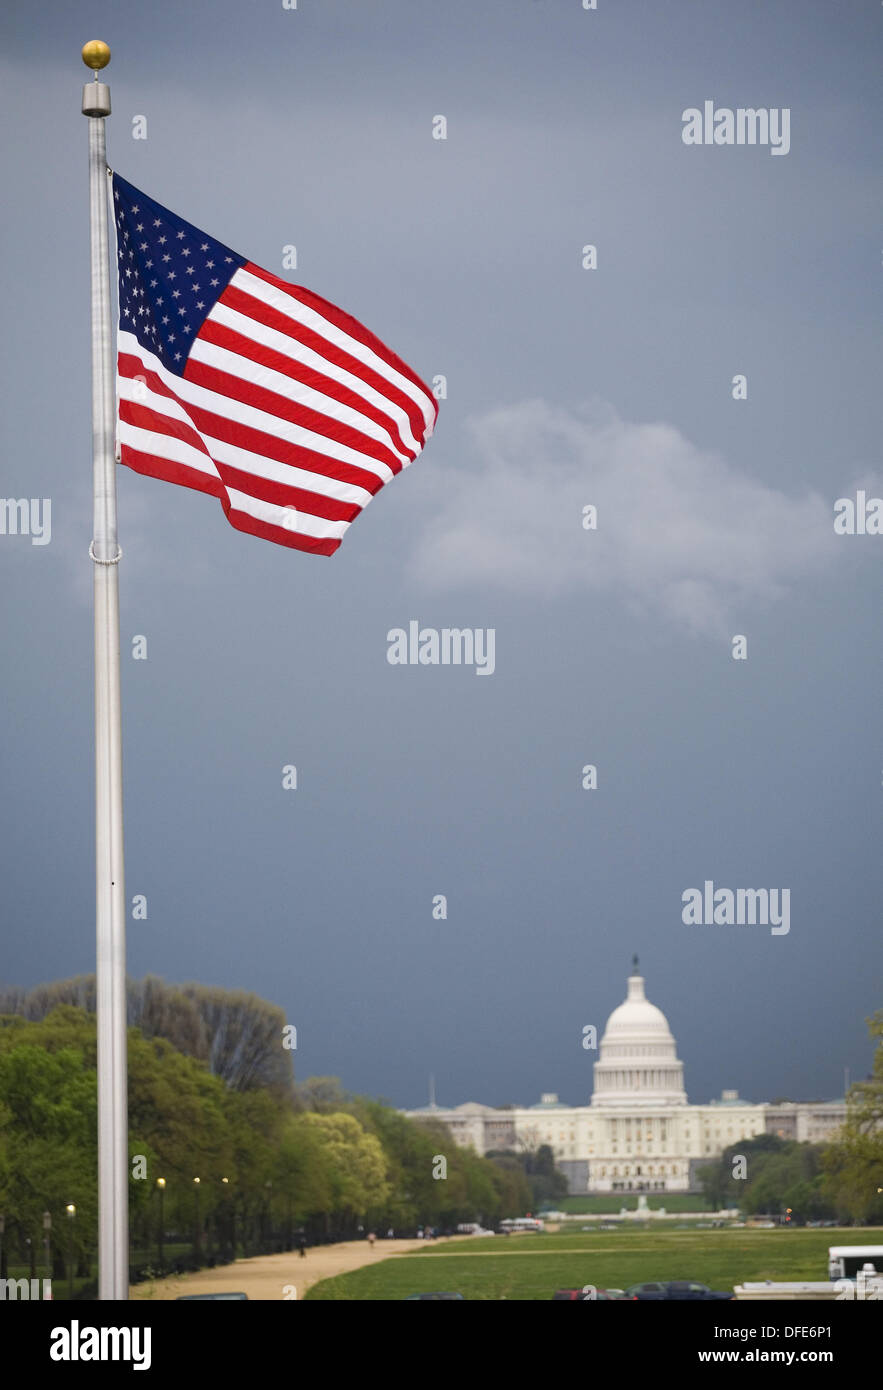 American flag and Capitol Building in background, Washington D.C., USA - Stock Image